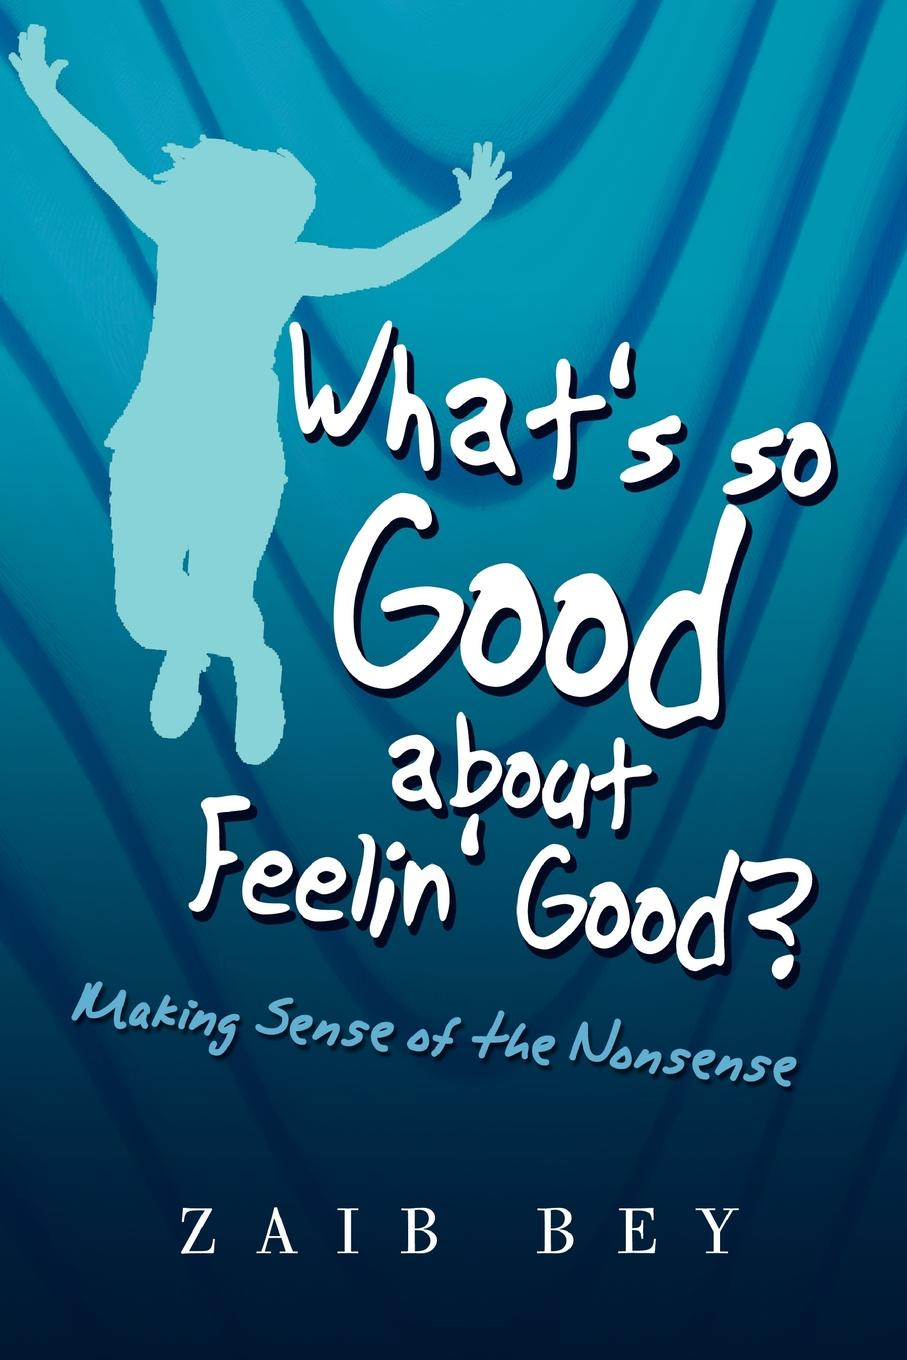 Zaib Bey Whats So Good about Feelin Good?